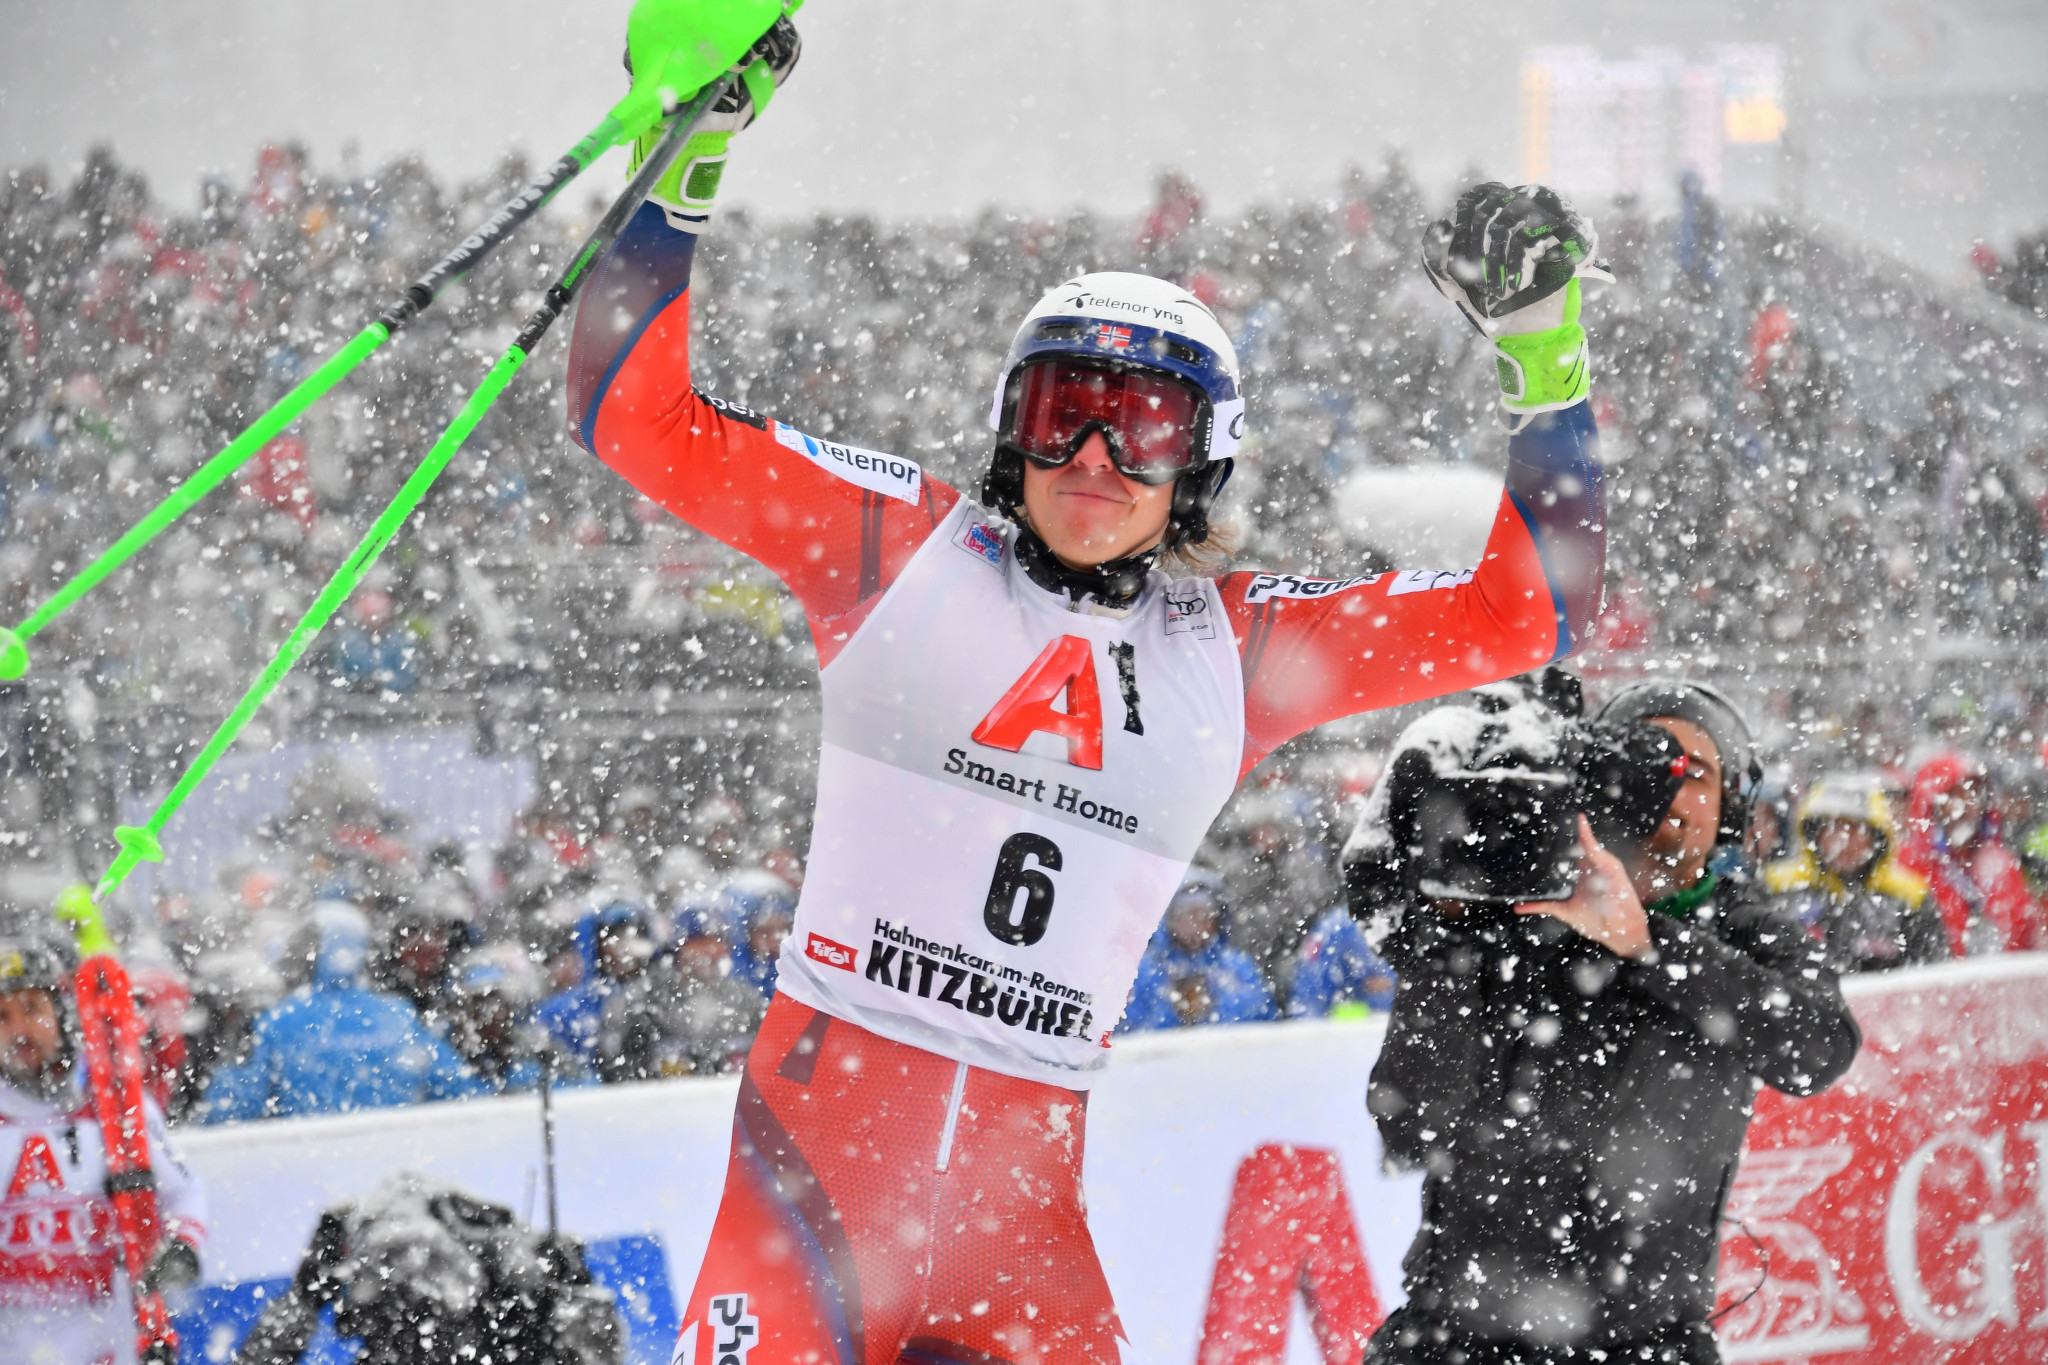 Kristoffersen shocks Hirscher to claim first slalom title of the season at FIS Alpine Skiing World Cup in Kitzbühel